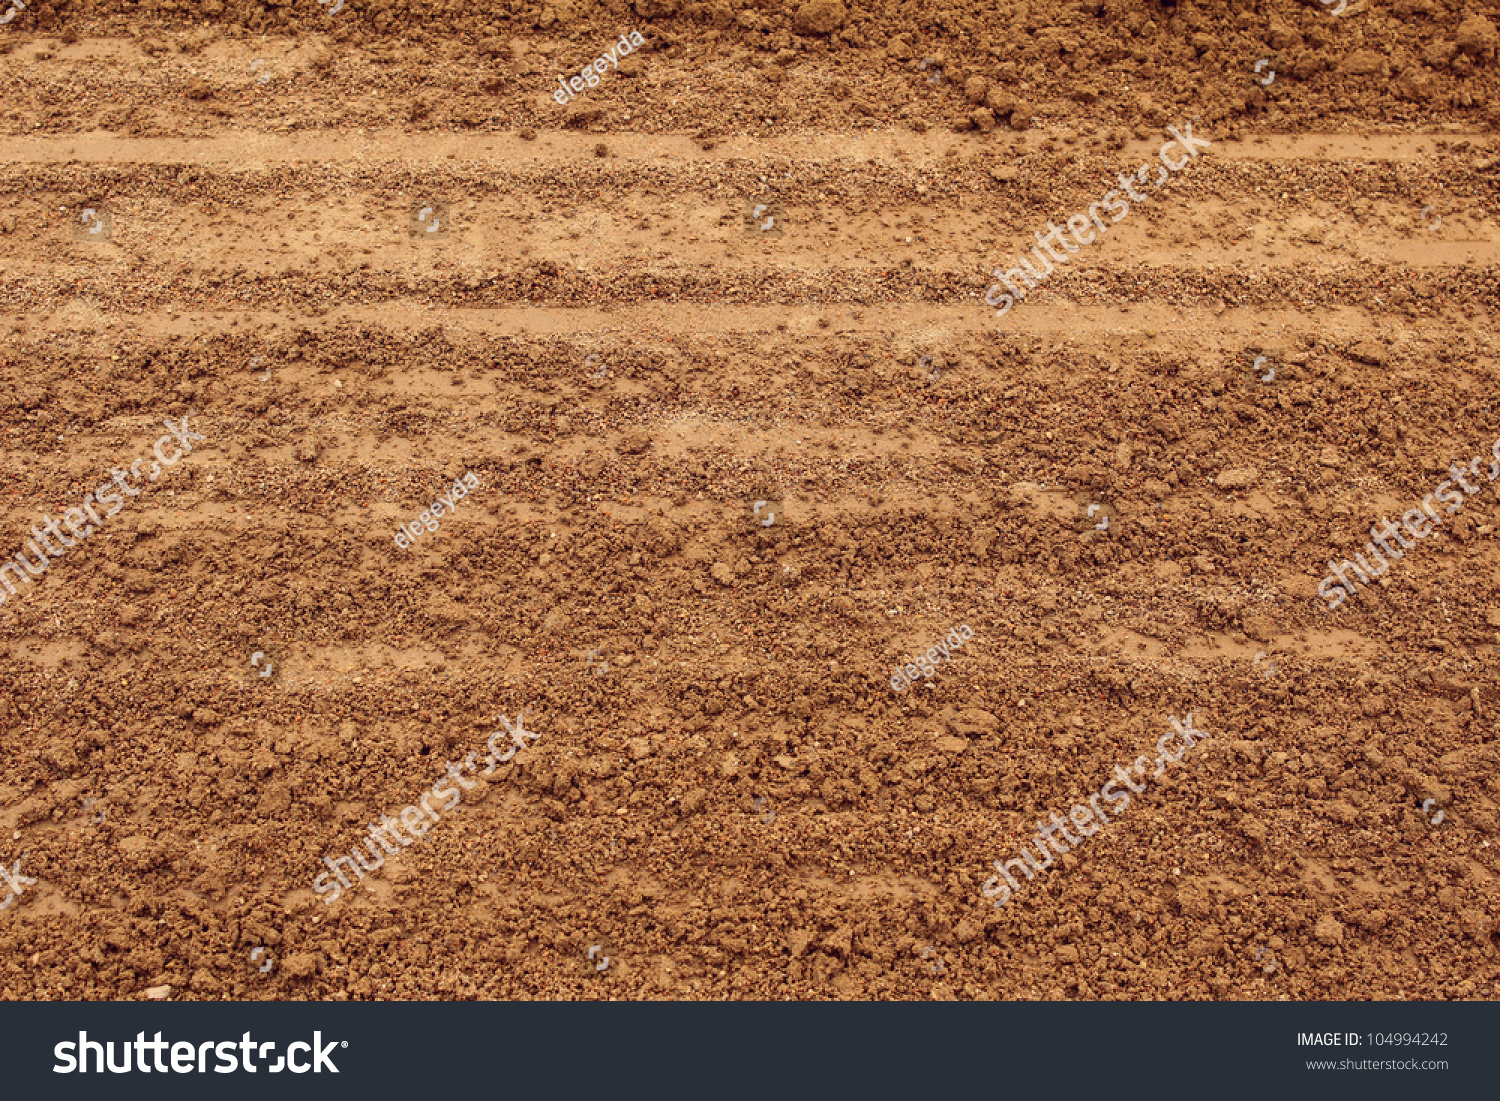 Soil Texture Layers Natural Background Stock Photo ...